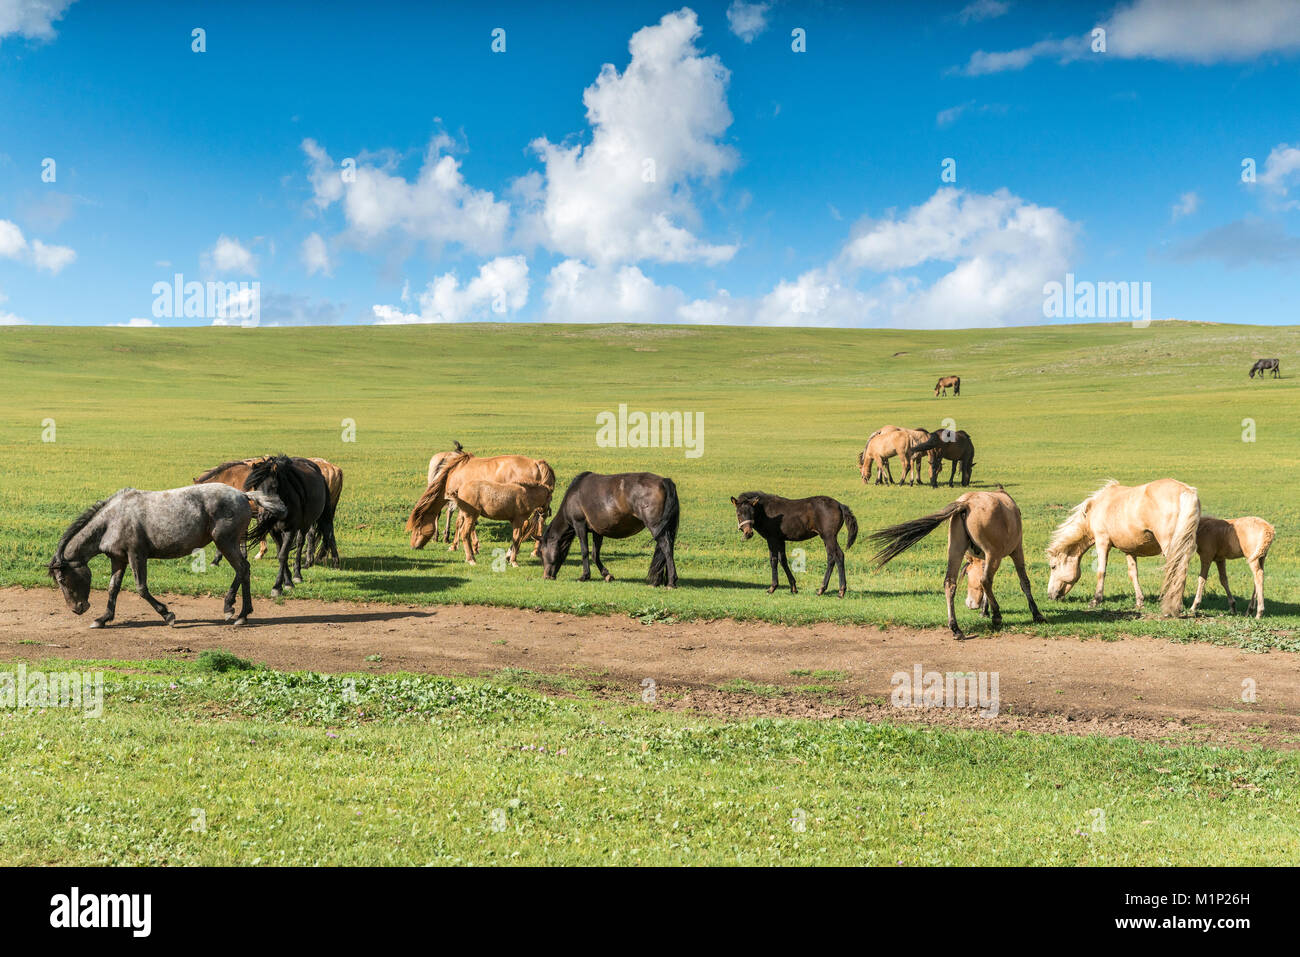 Horses grazing on the Mongolian steppe, South Hangay, Mongolia, Central Asia, Asia - Stock Image